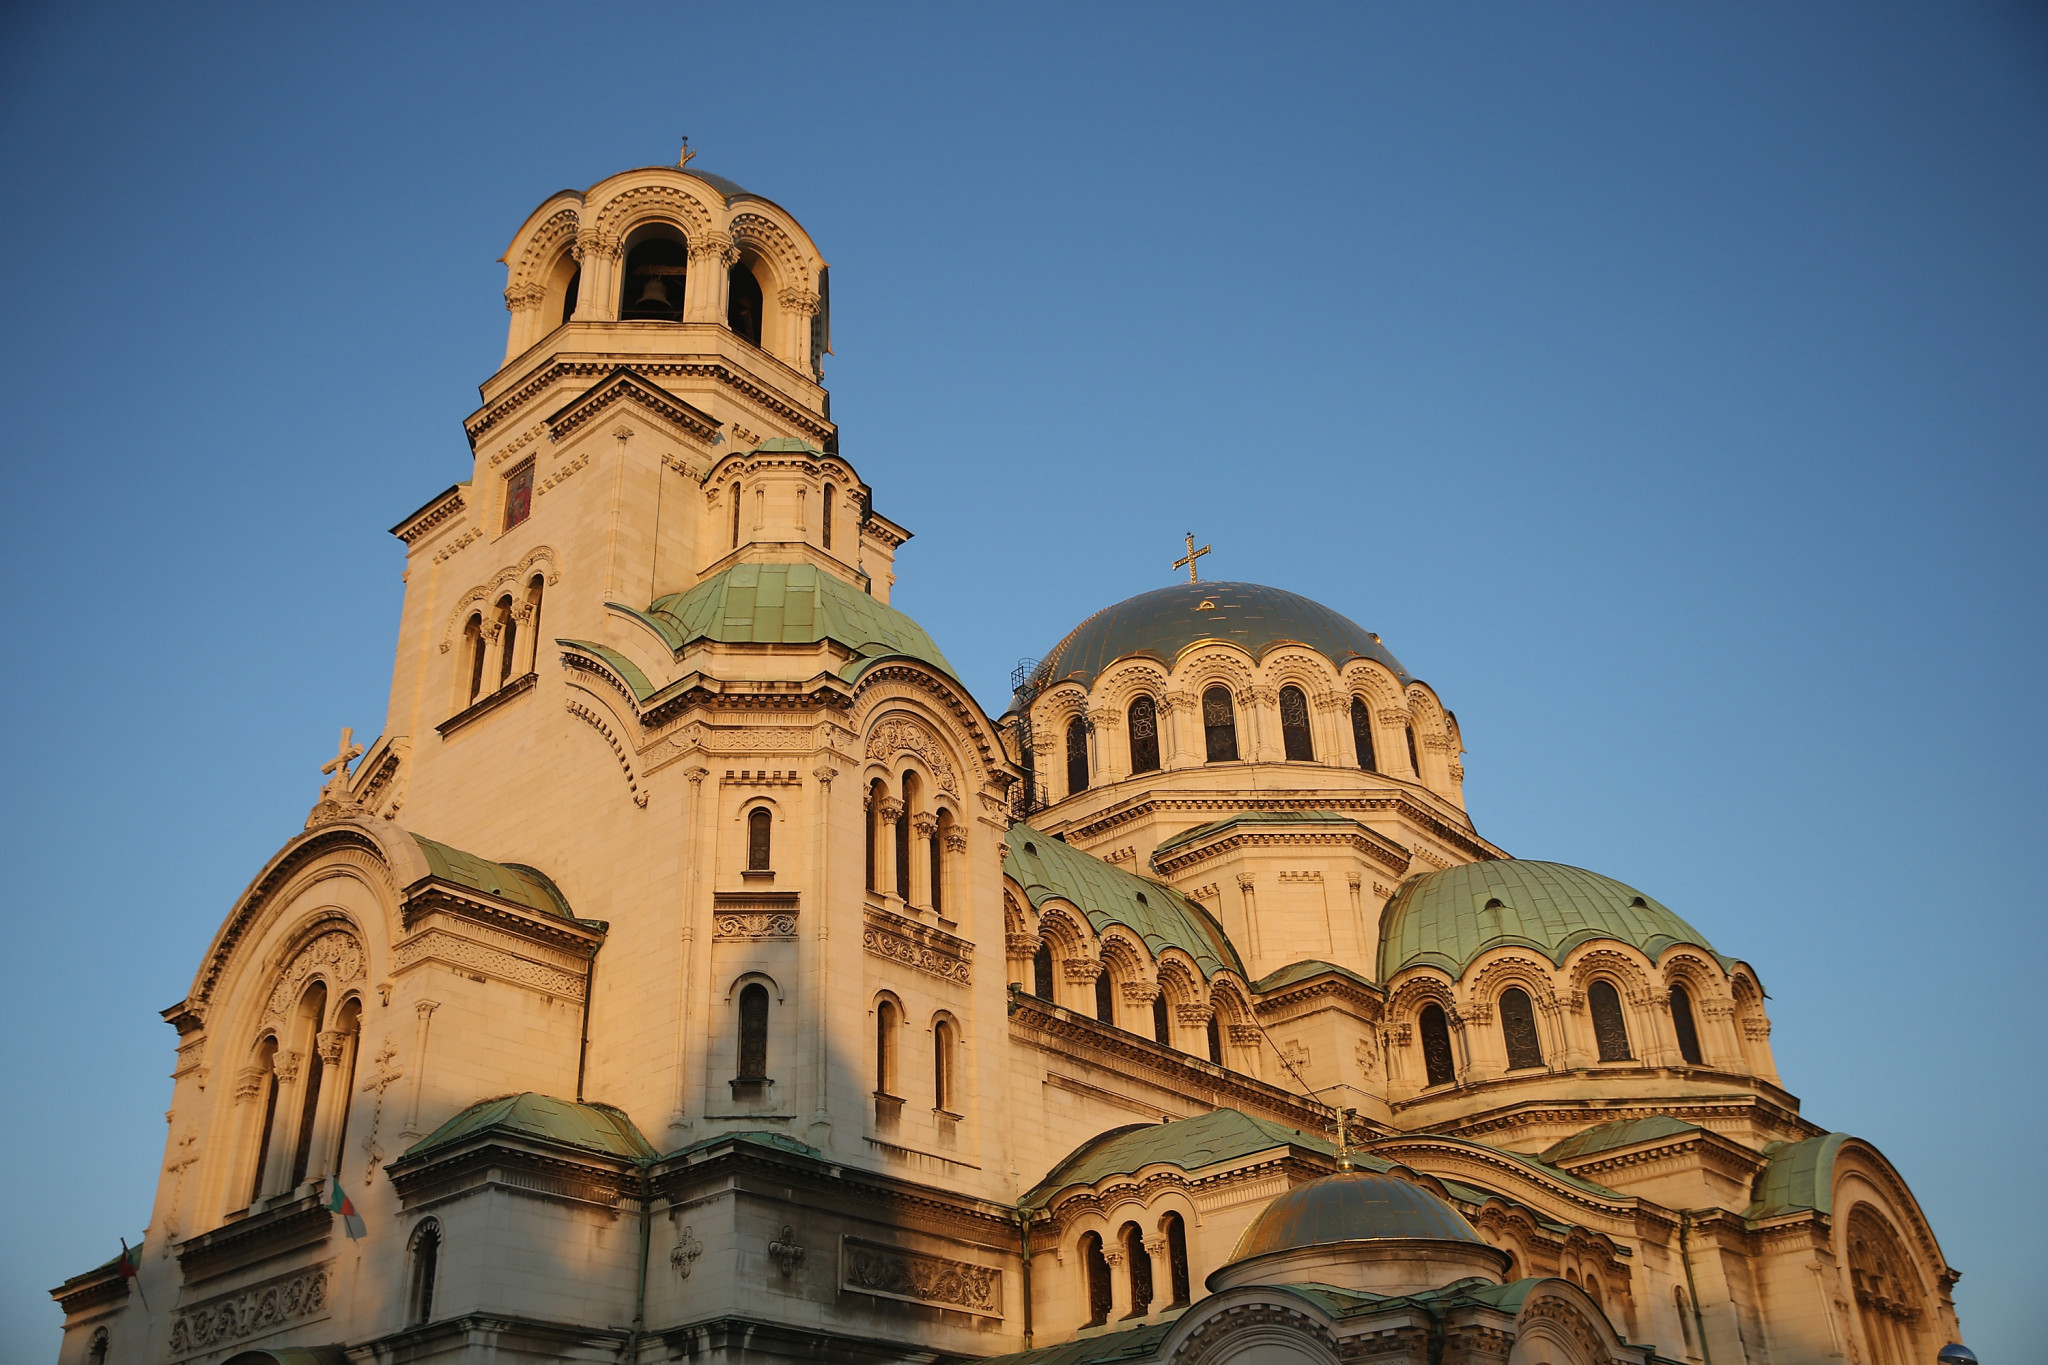 Sofia, Bulgaria. ©Sean Gallup/Getty Images